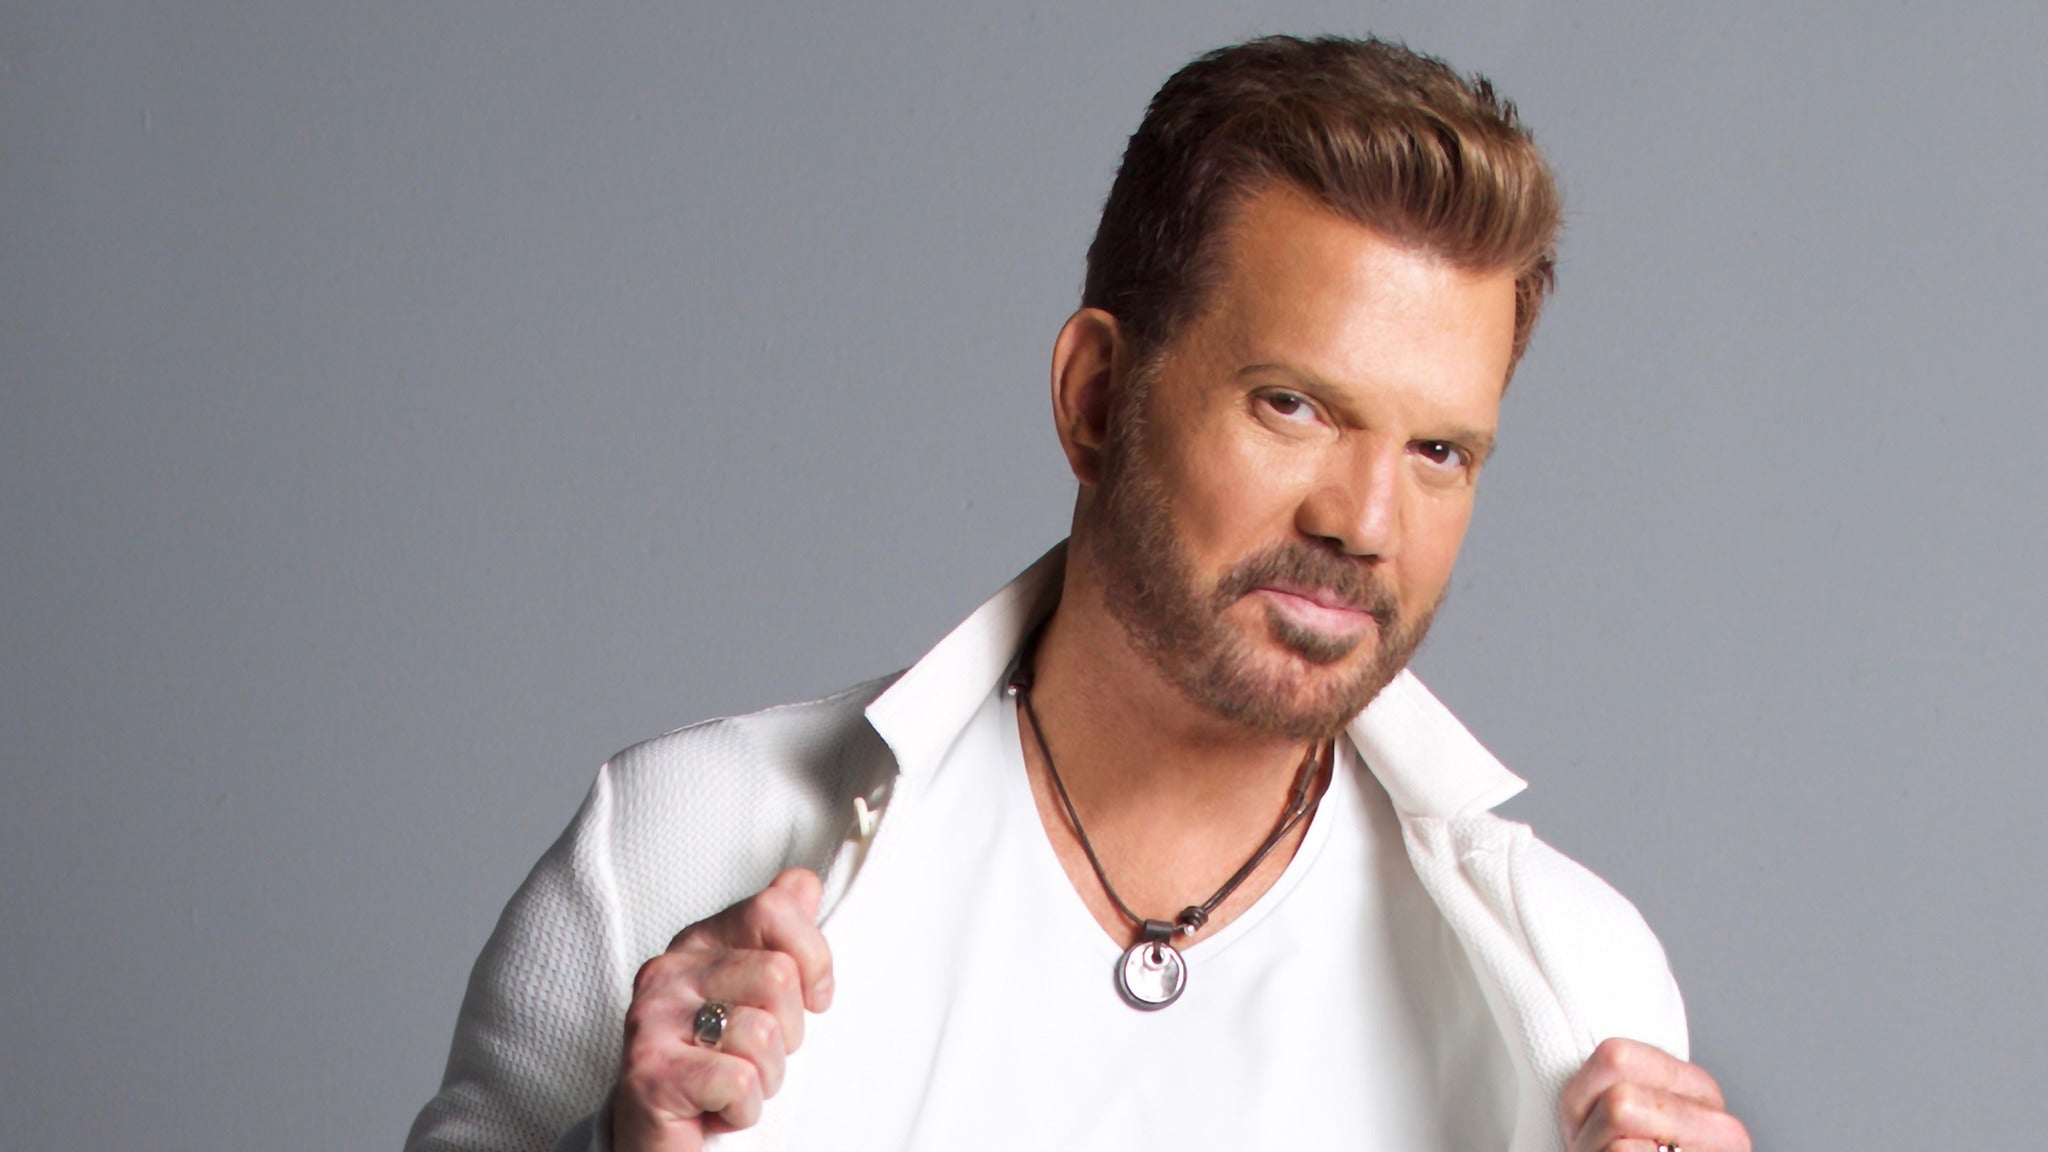 Willy Chirino at Bergen Performing Arts Center